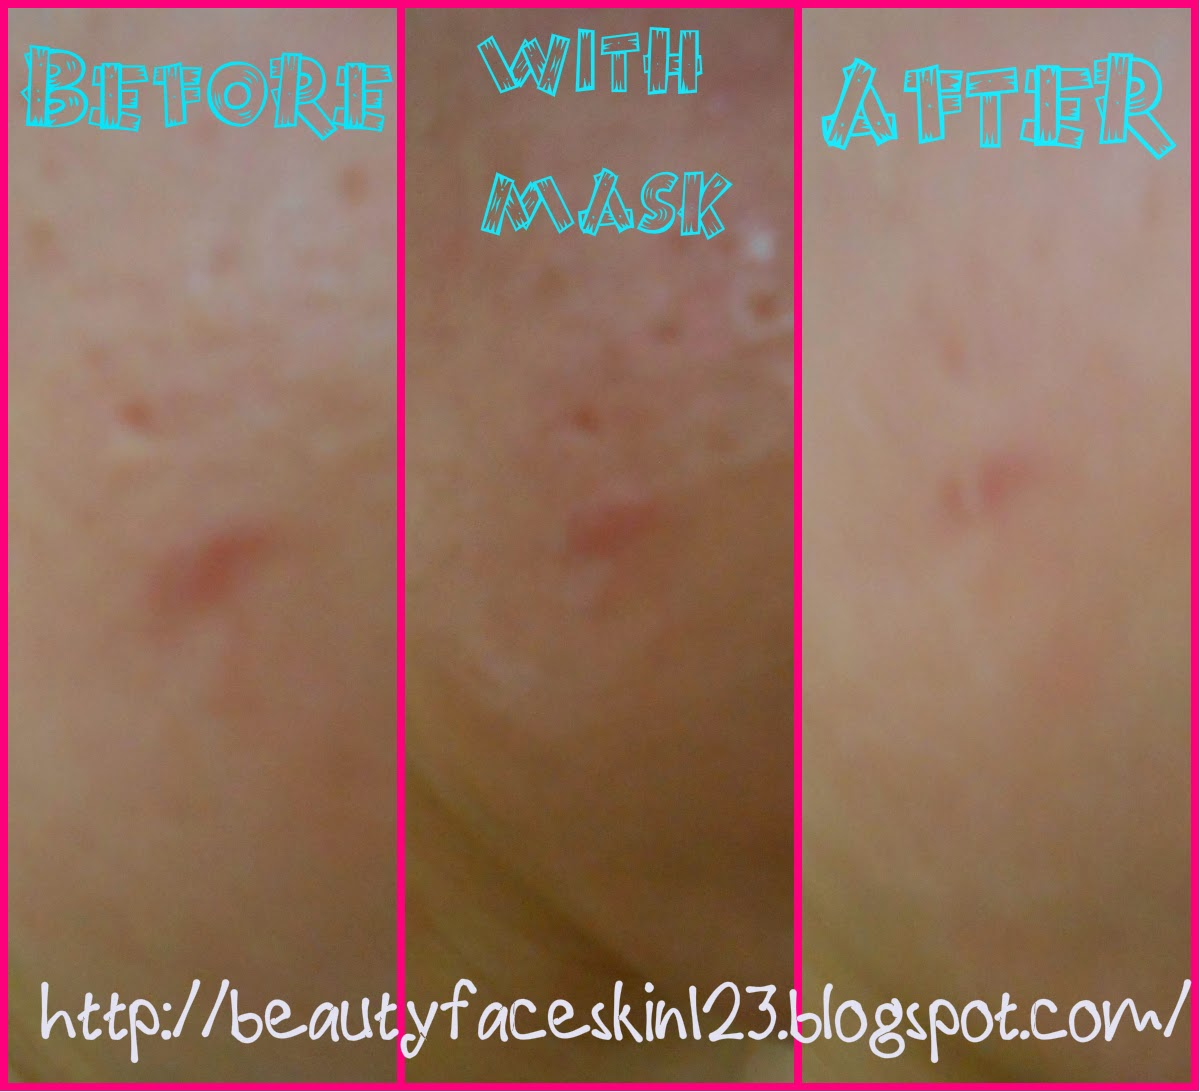 Alcohol for acne scars Alcohol for acne prone skin images